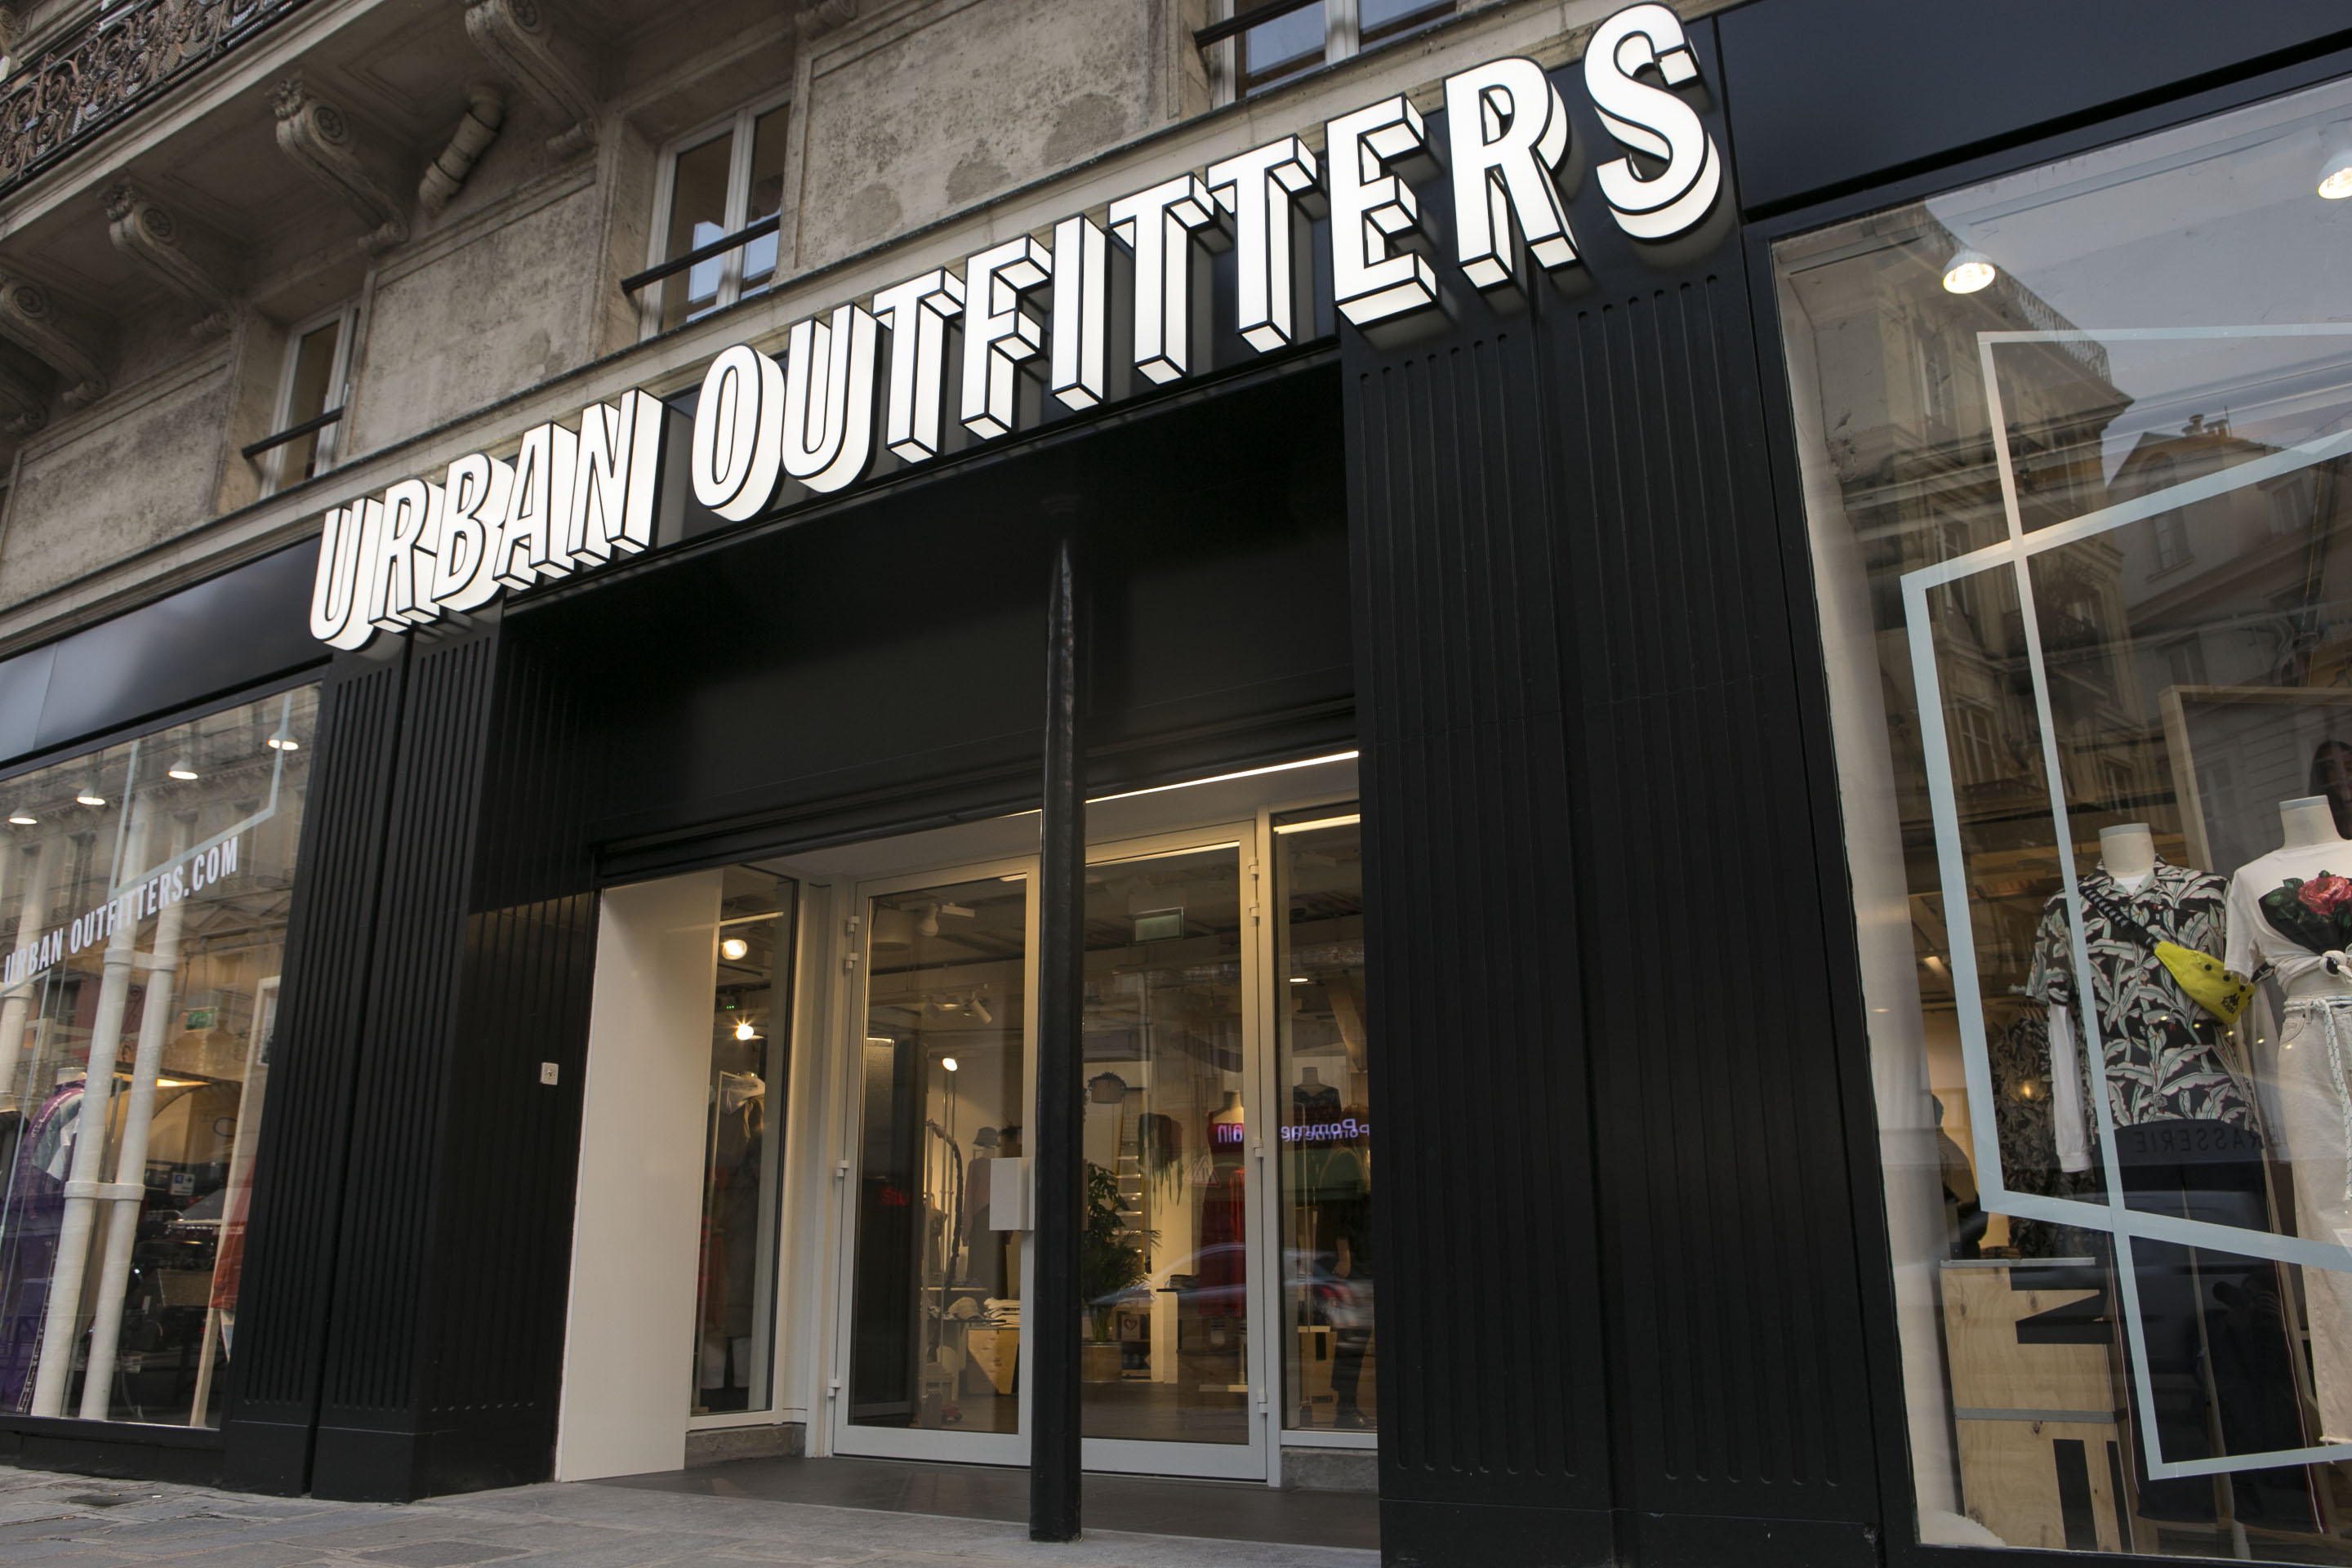 The Urban Outfitters Paris store.